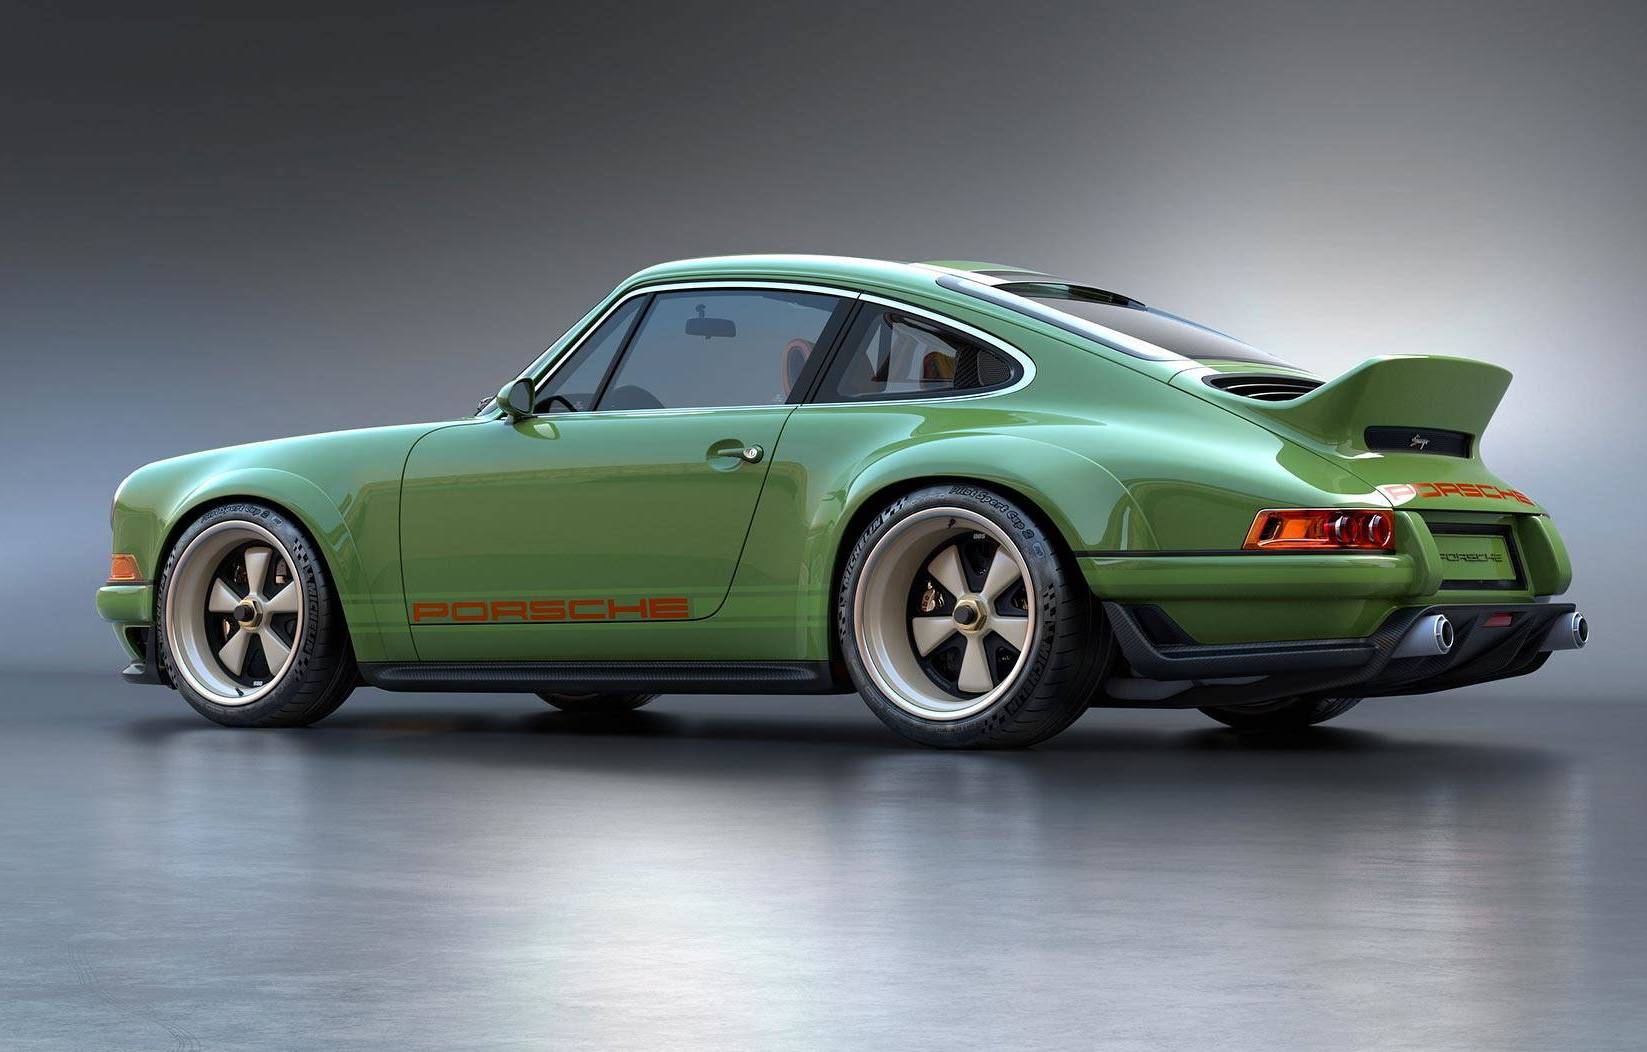 Singer Design Porsche 911 Project With Williams Tech Finished Performancedrive